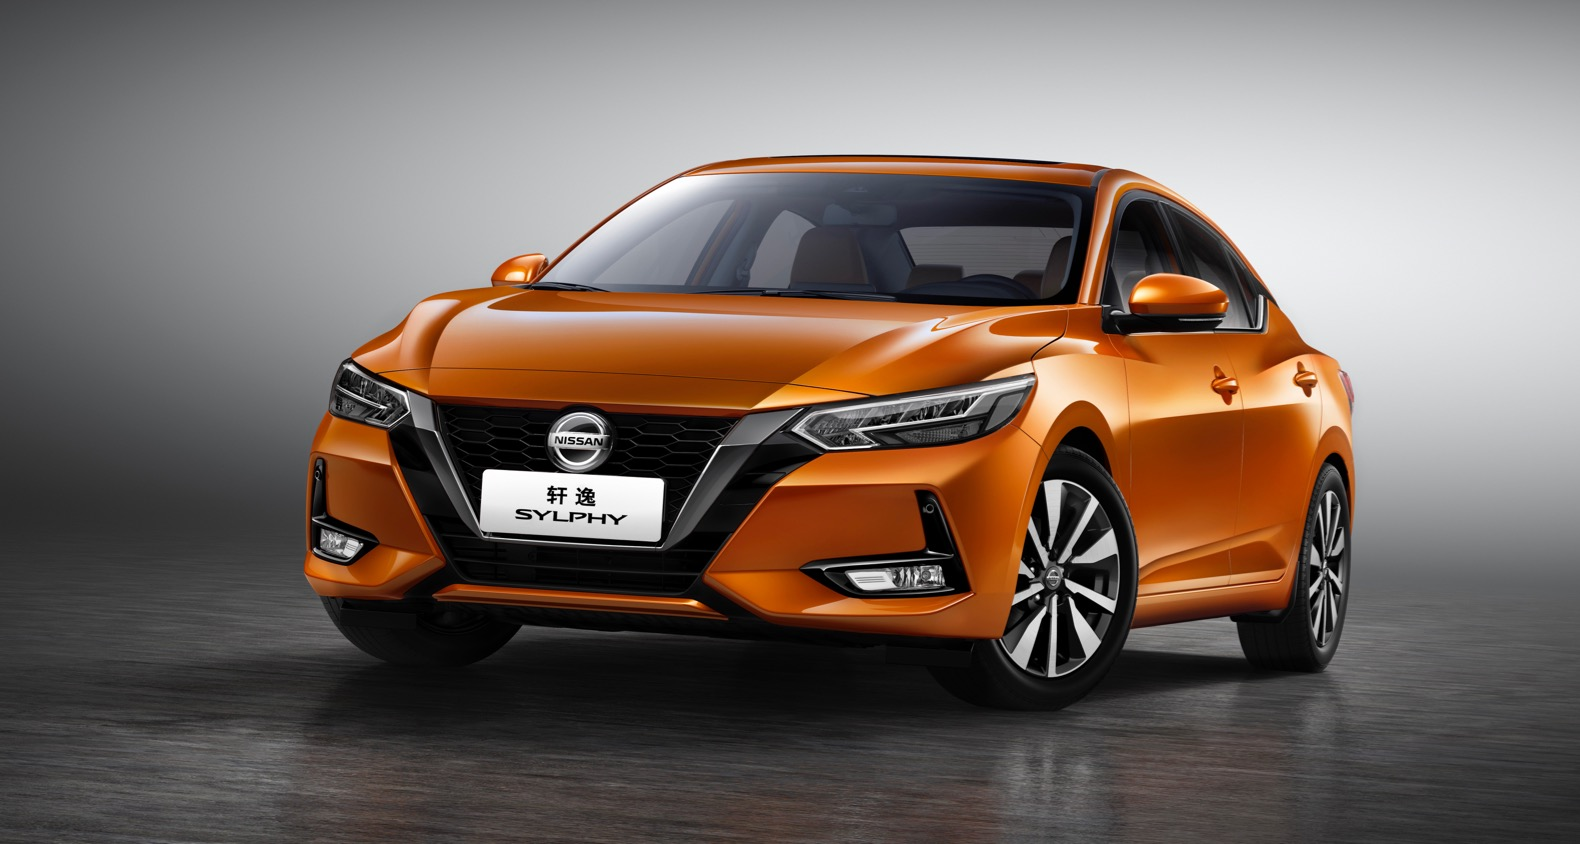 2020 nissan sylphy is likely the next